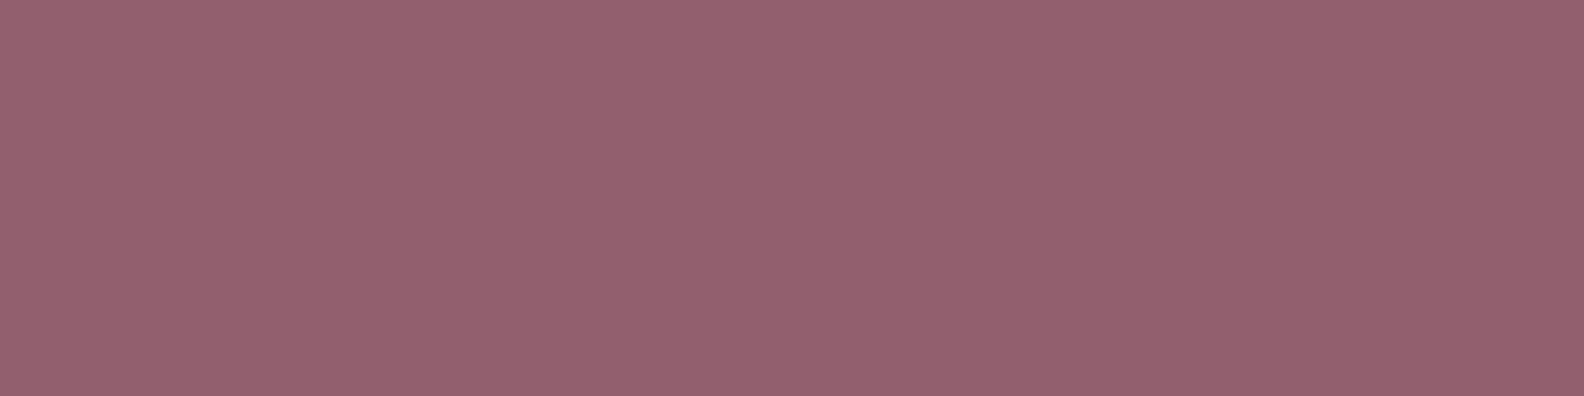 1584x396 Raspberry Glace Solid Color Background